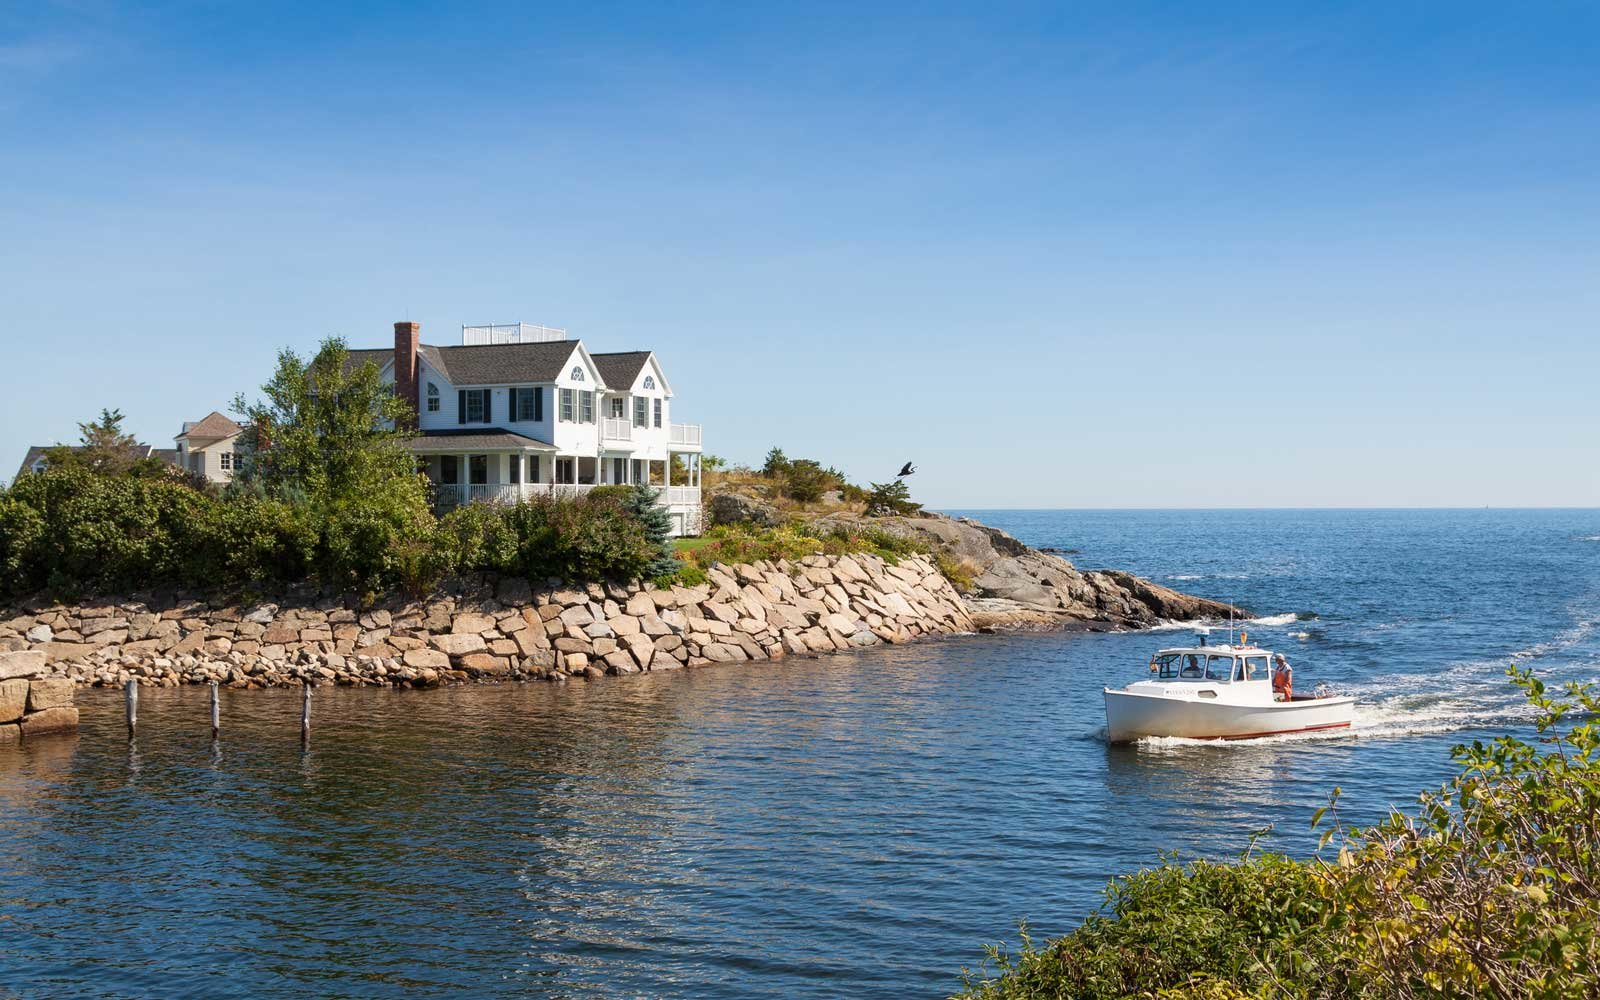 The Best Small Beach Towns for People Who Want to Escape the